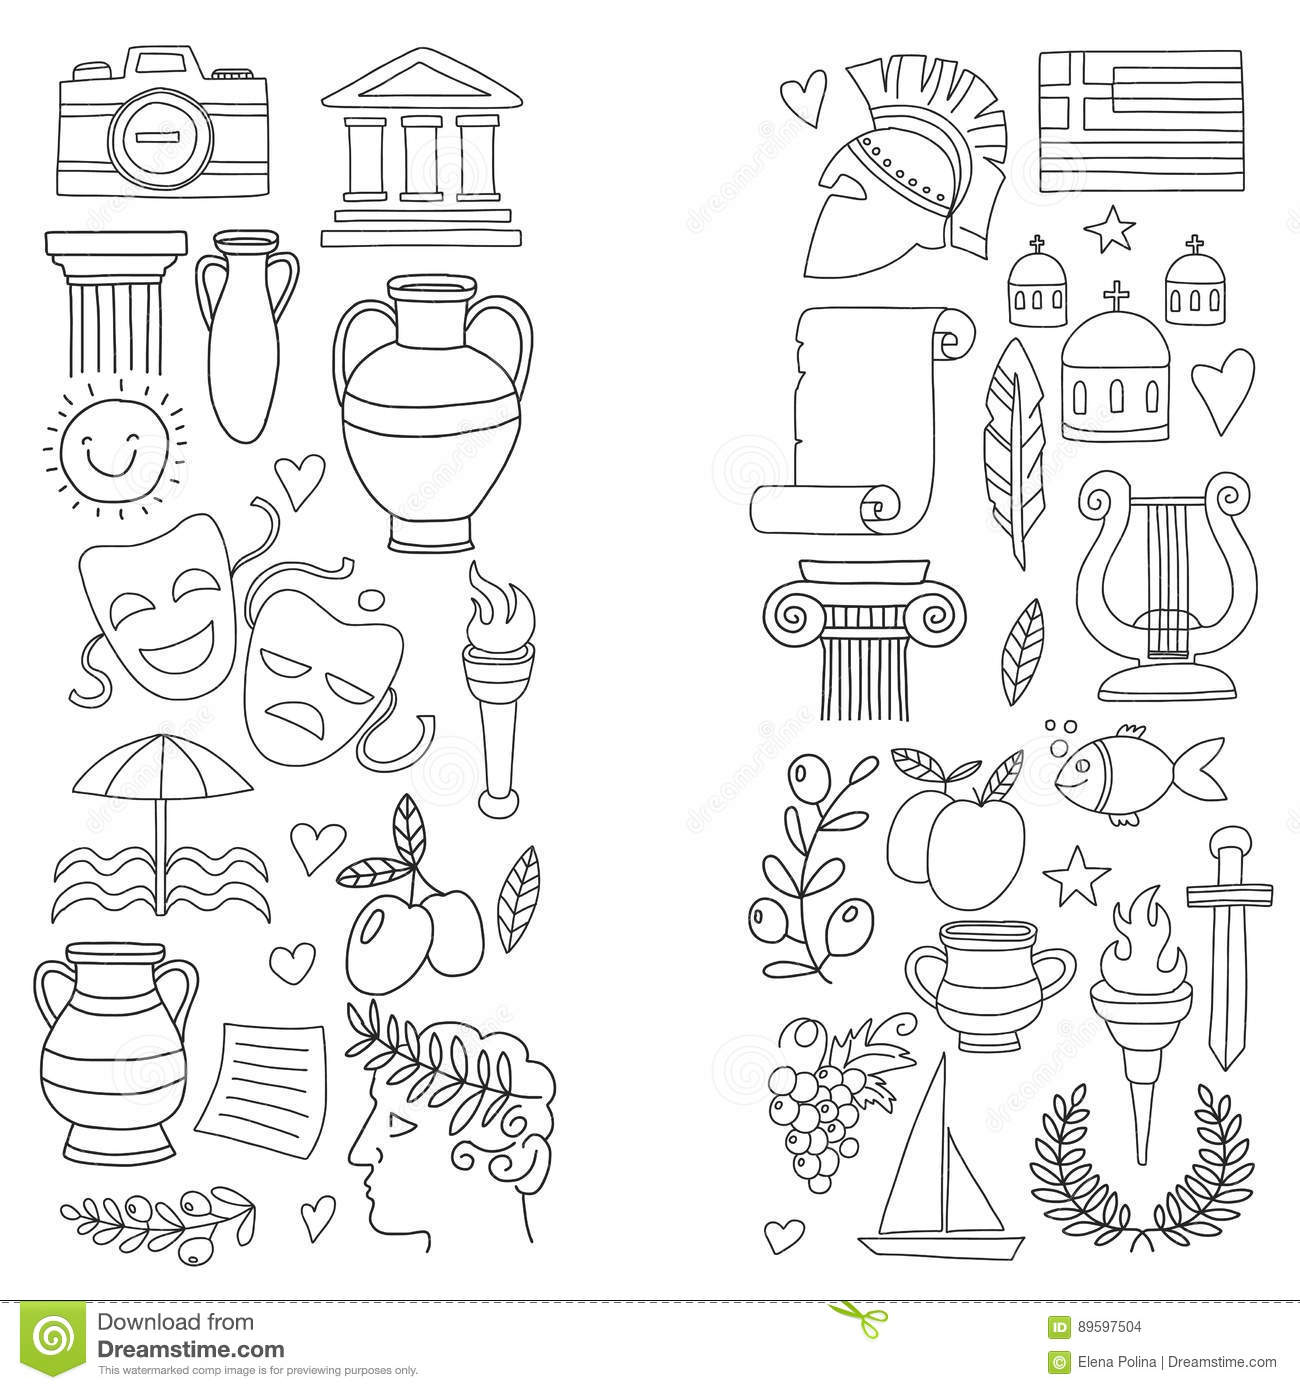 amphora-Ancient-Greece-Coloring-Pages.jpg (1177×1562) | Ancient ... | 1390x1300